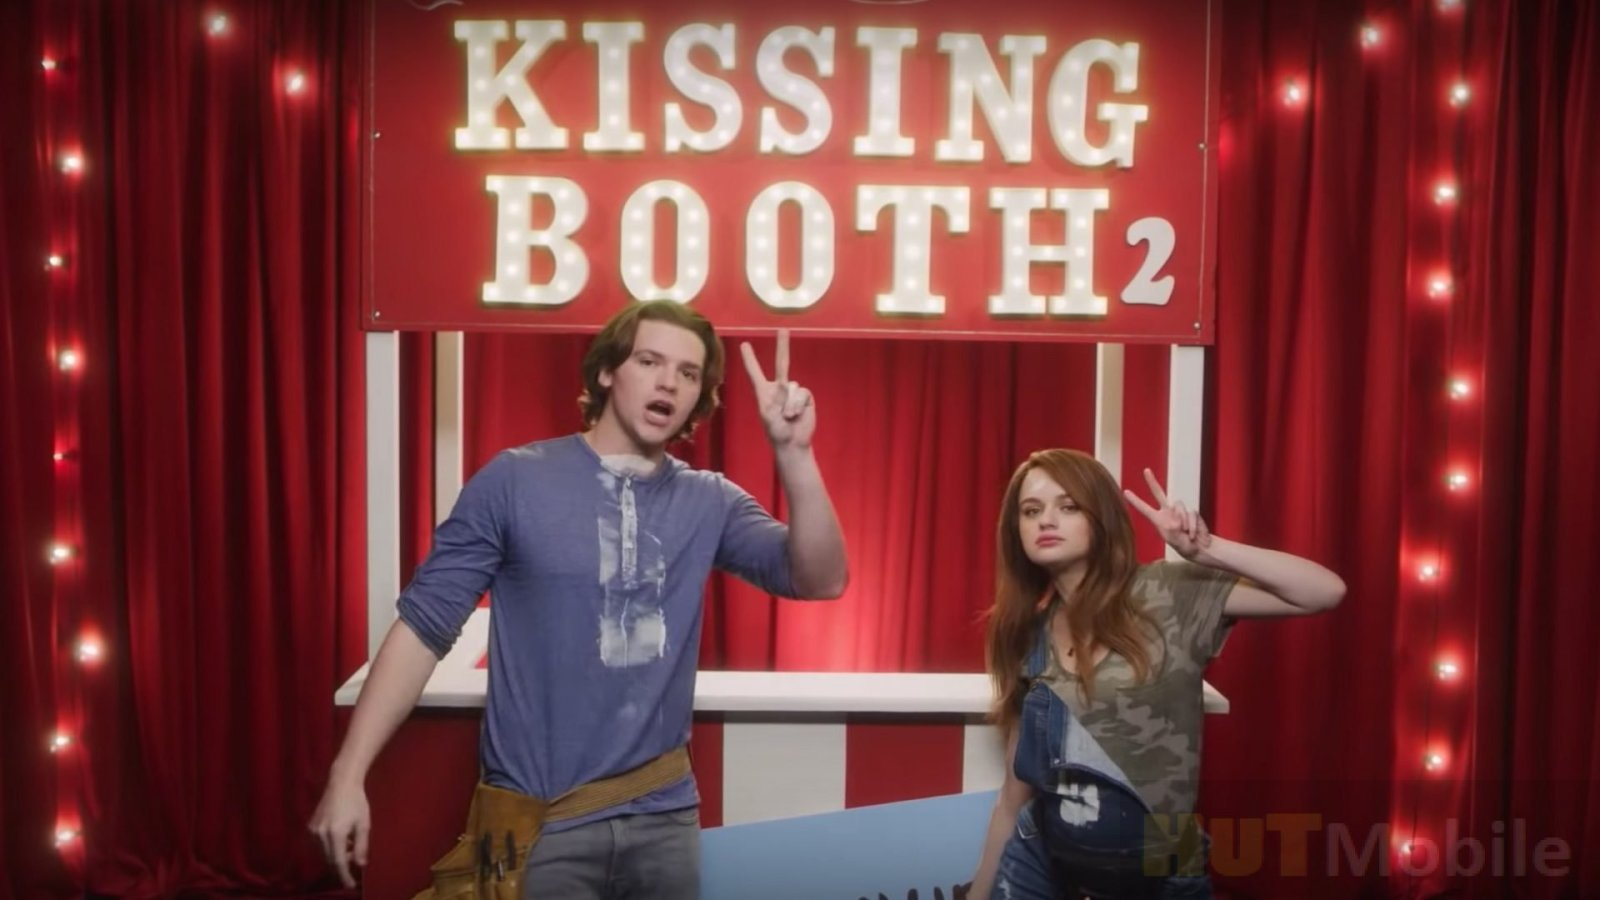 Netflix The Kissing Booth 2 Plot, Trailer and Release Date